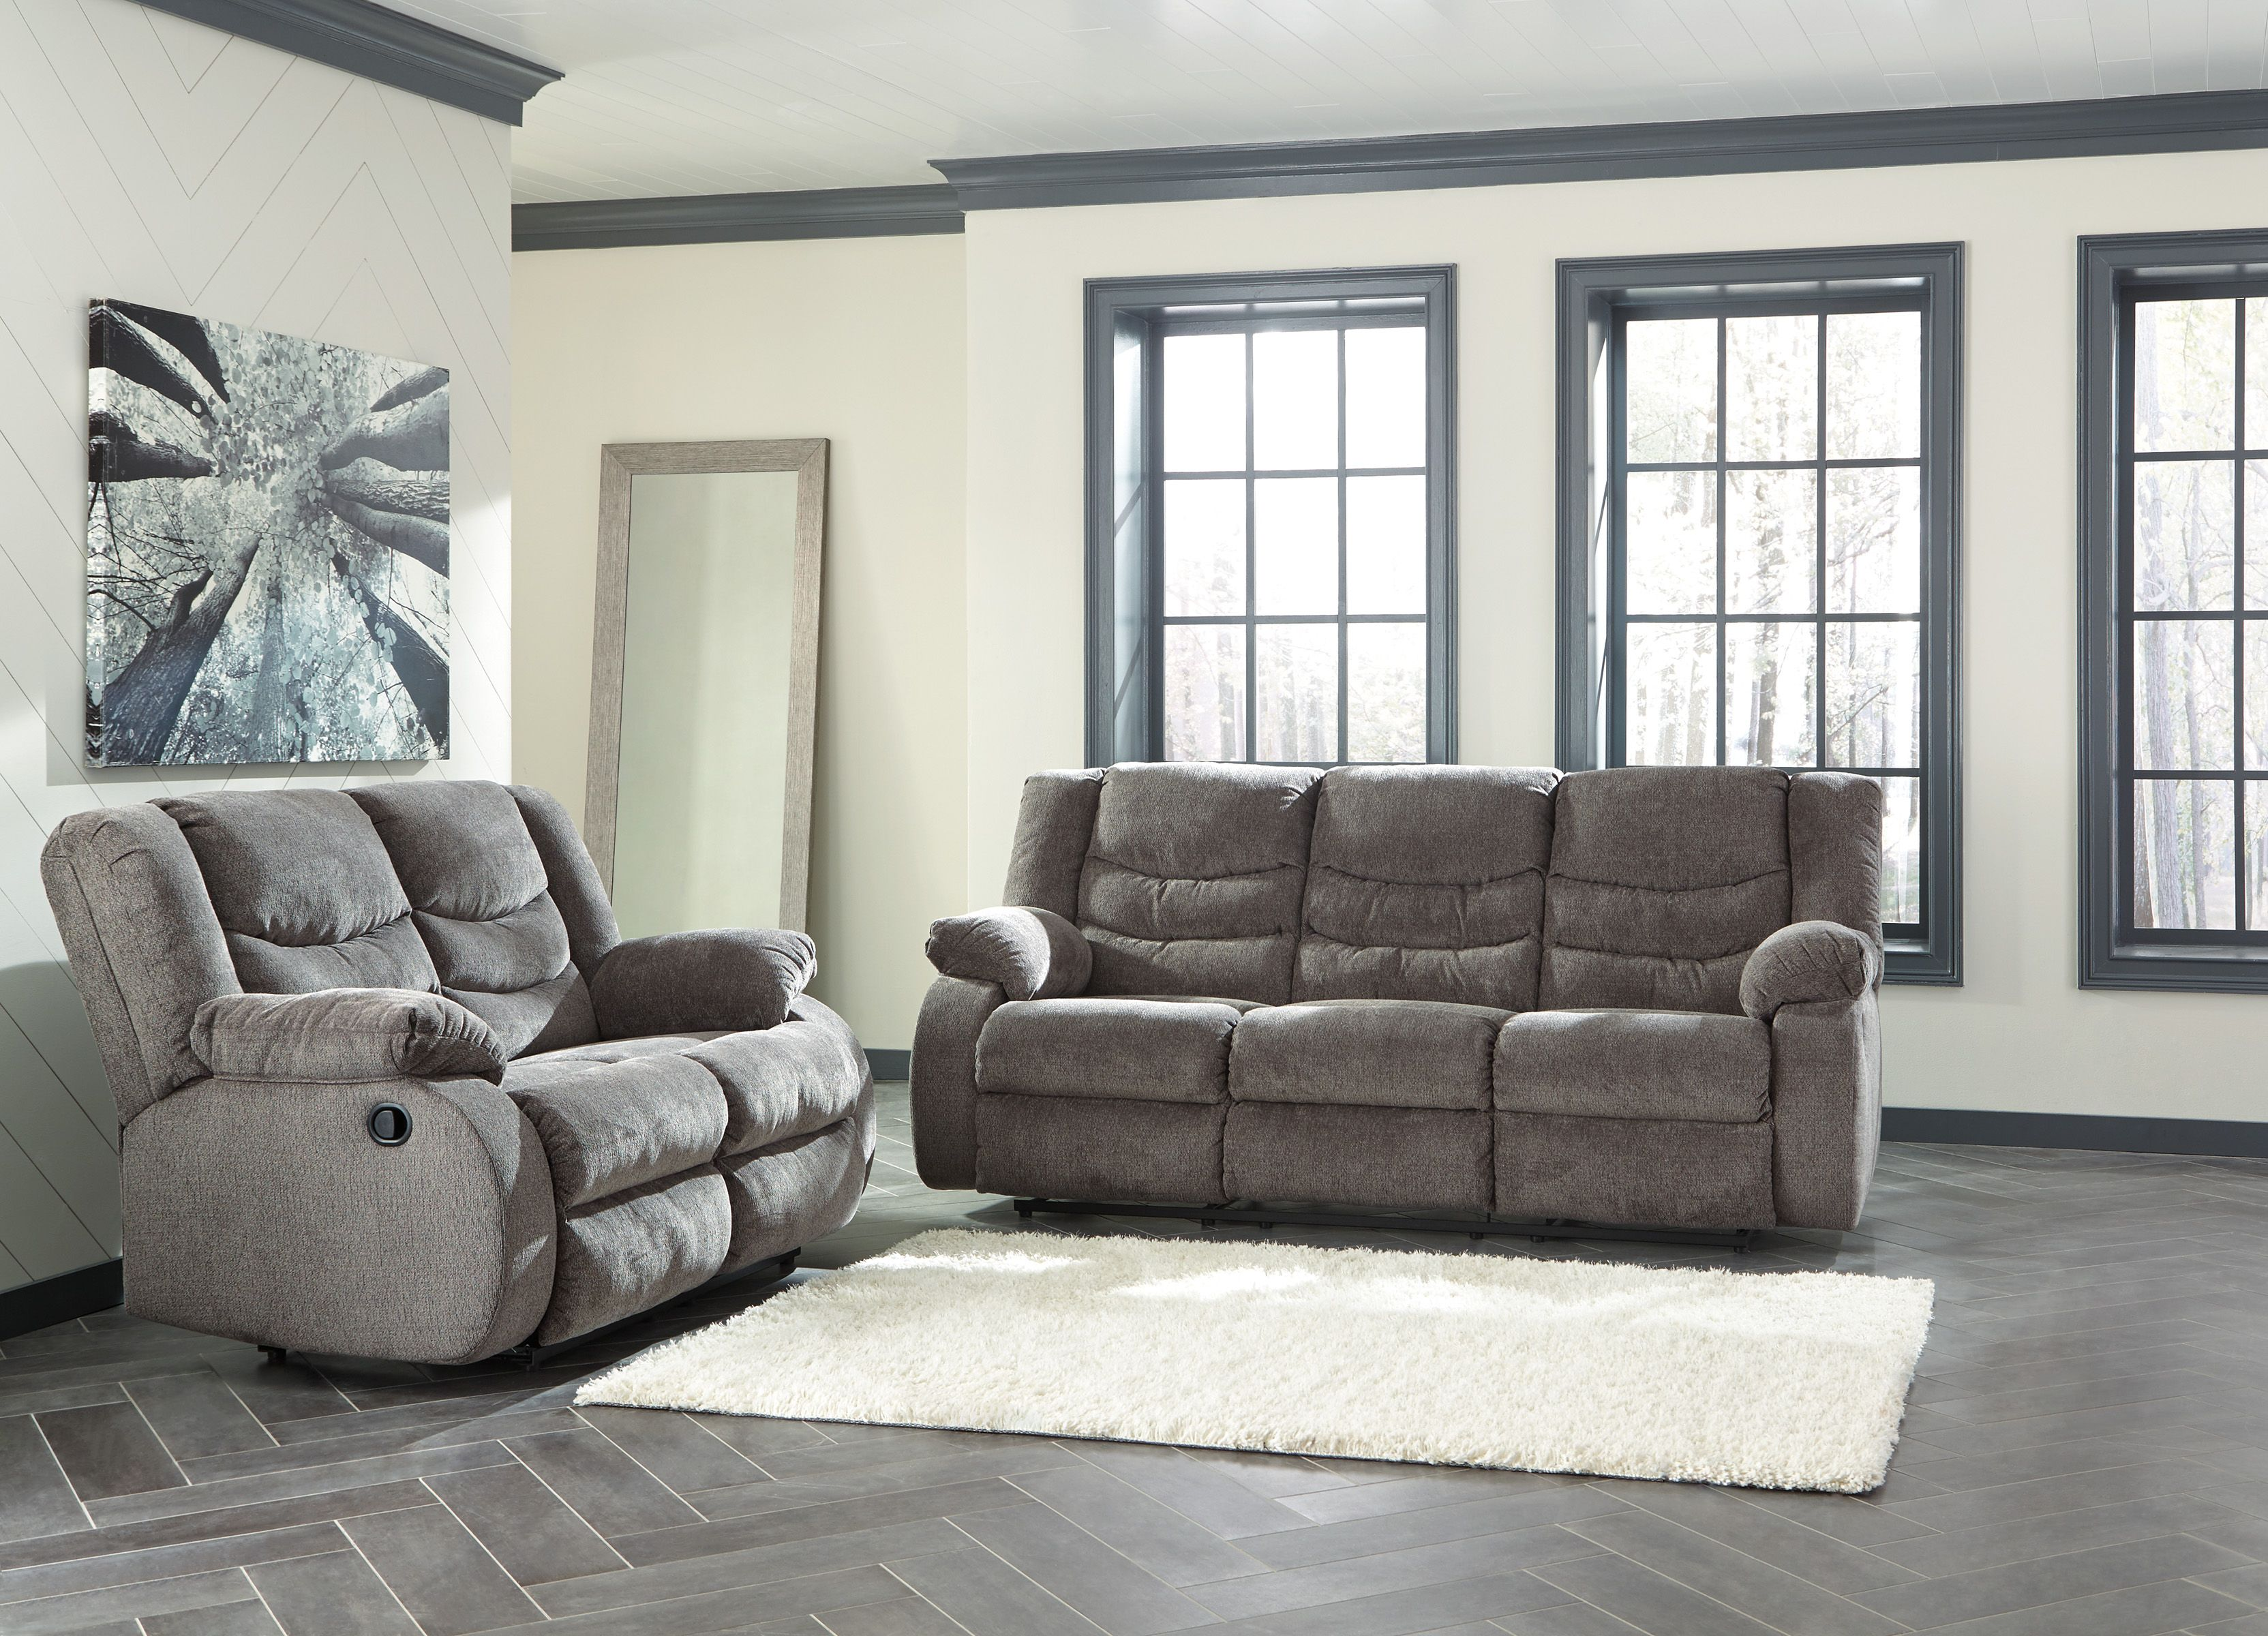 Admirable Tulen Gray Reclining Sofa And Loveseat Set Living Room Beatyapartments Chair Design Images Beatyapartmentscom